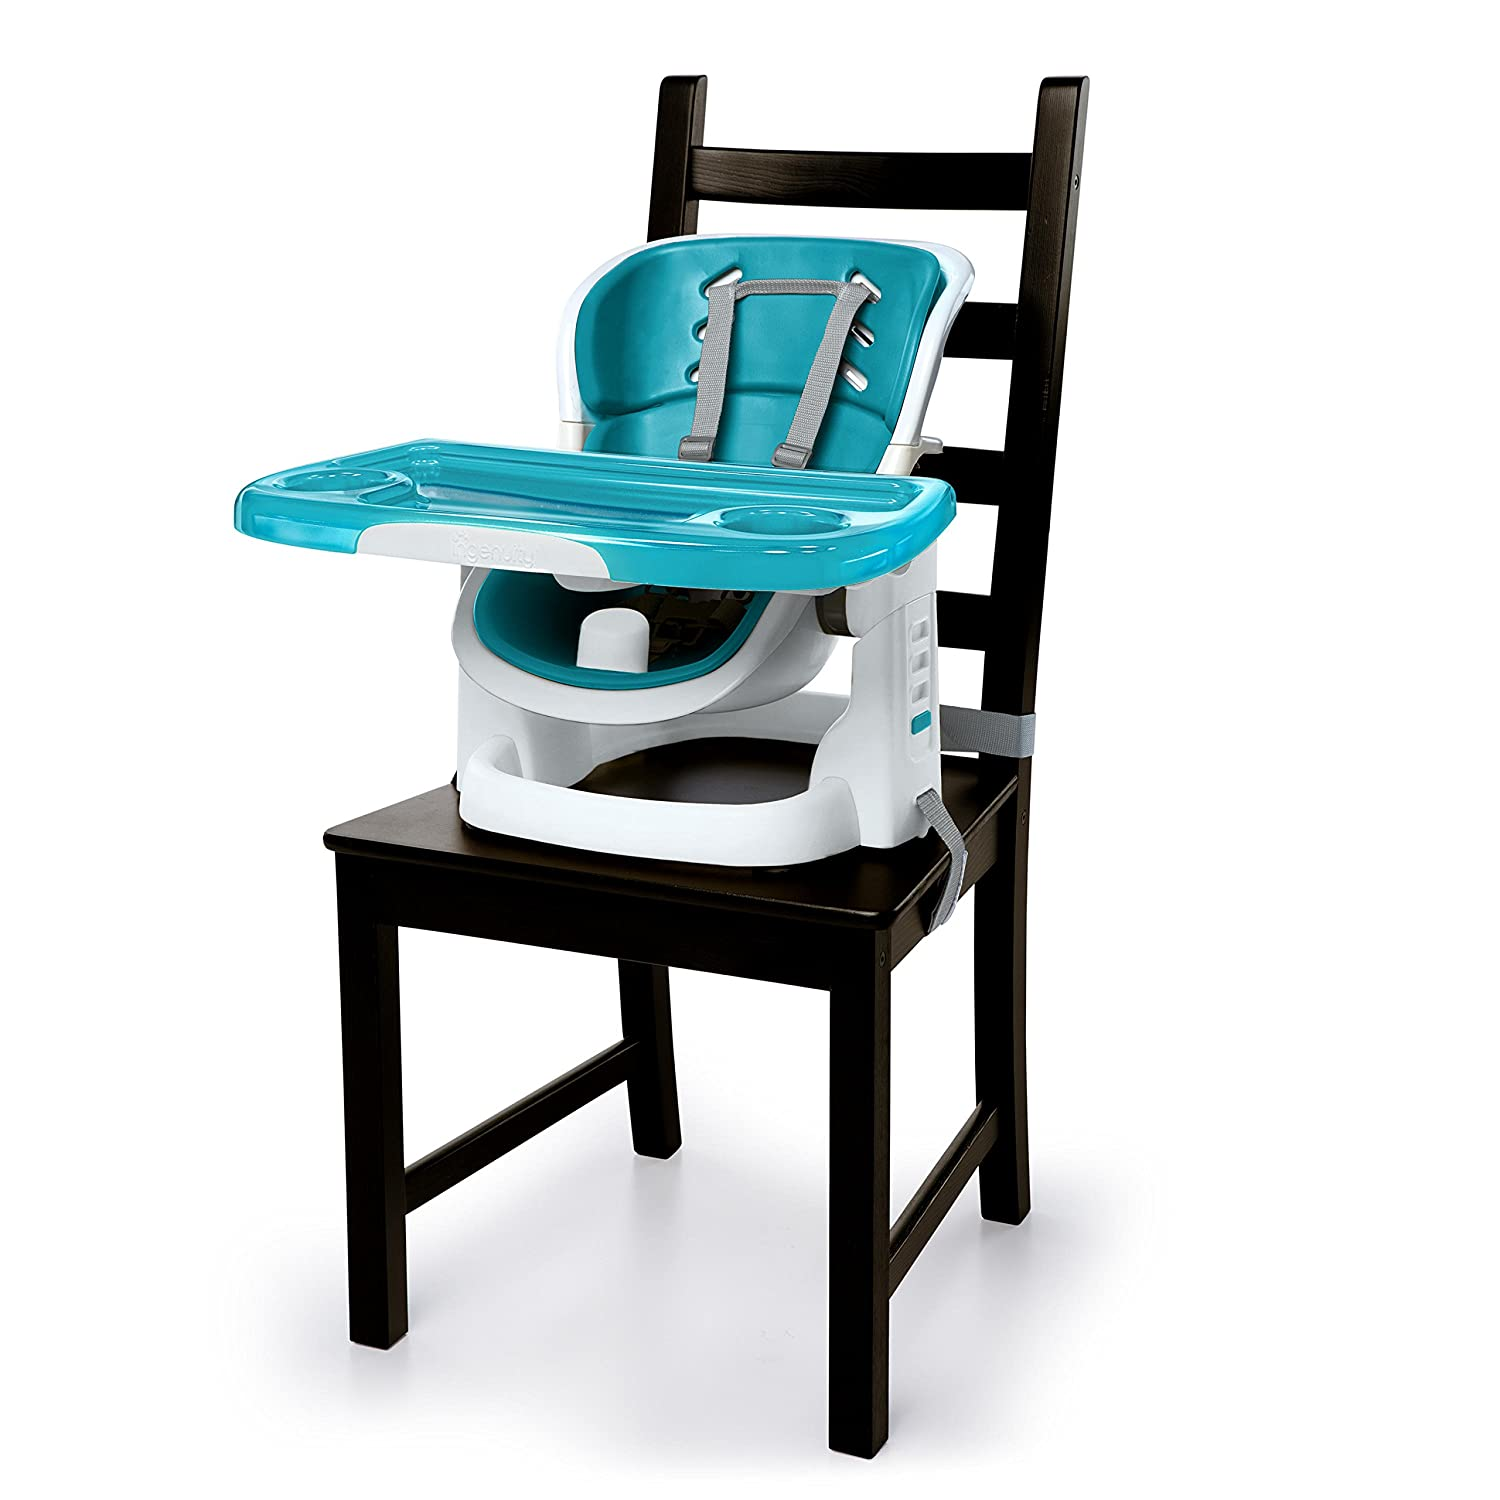 Ingenuity SmartClean ChairMate High Chair, Peacock Blue 10941-1-NU